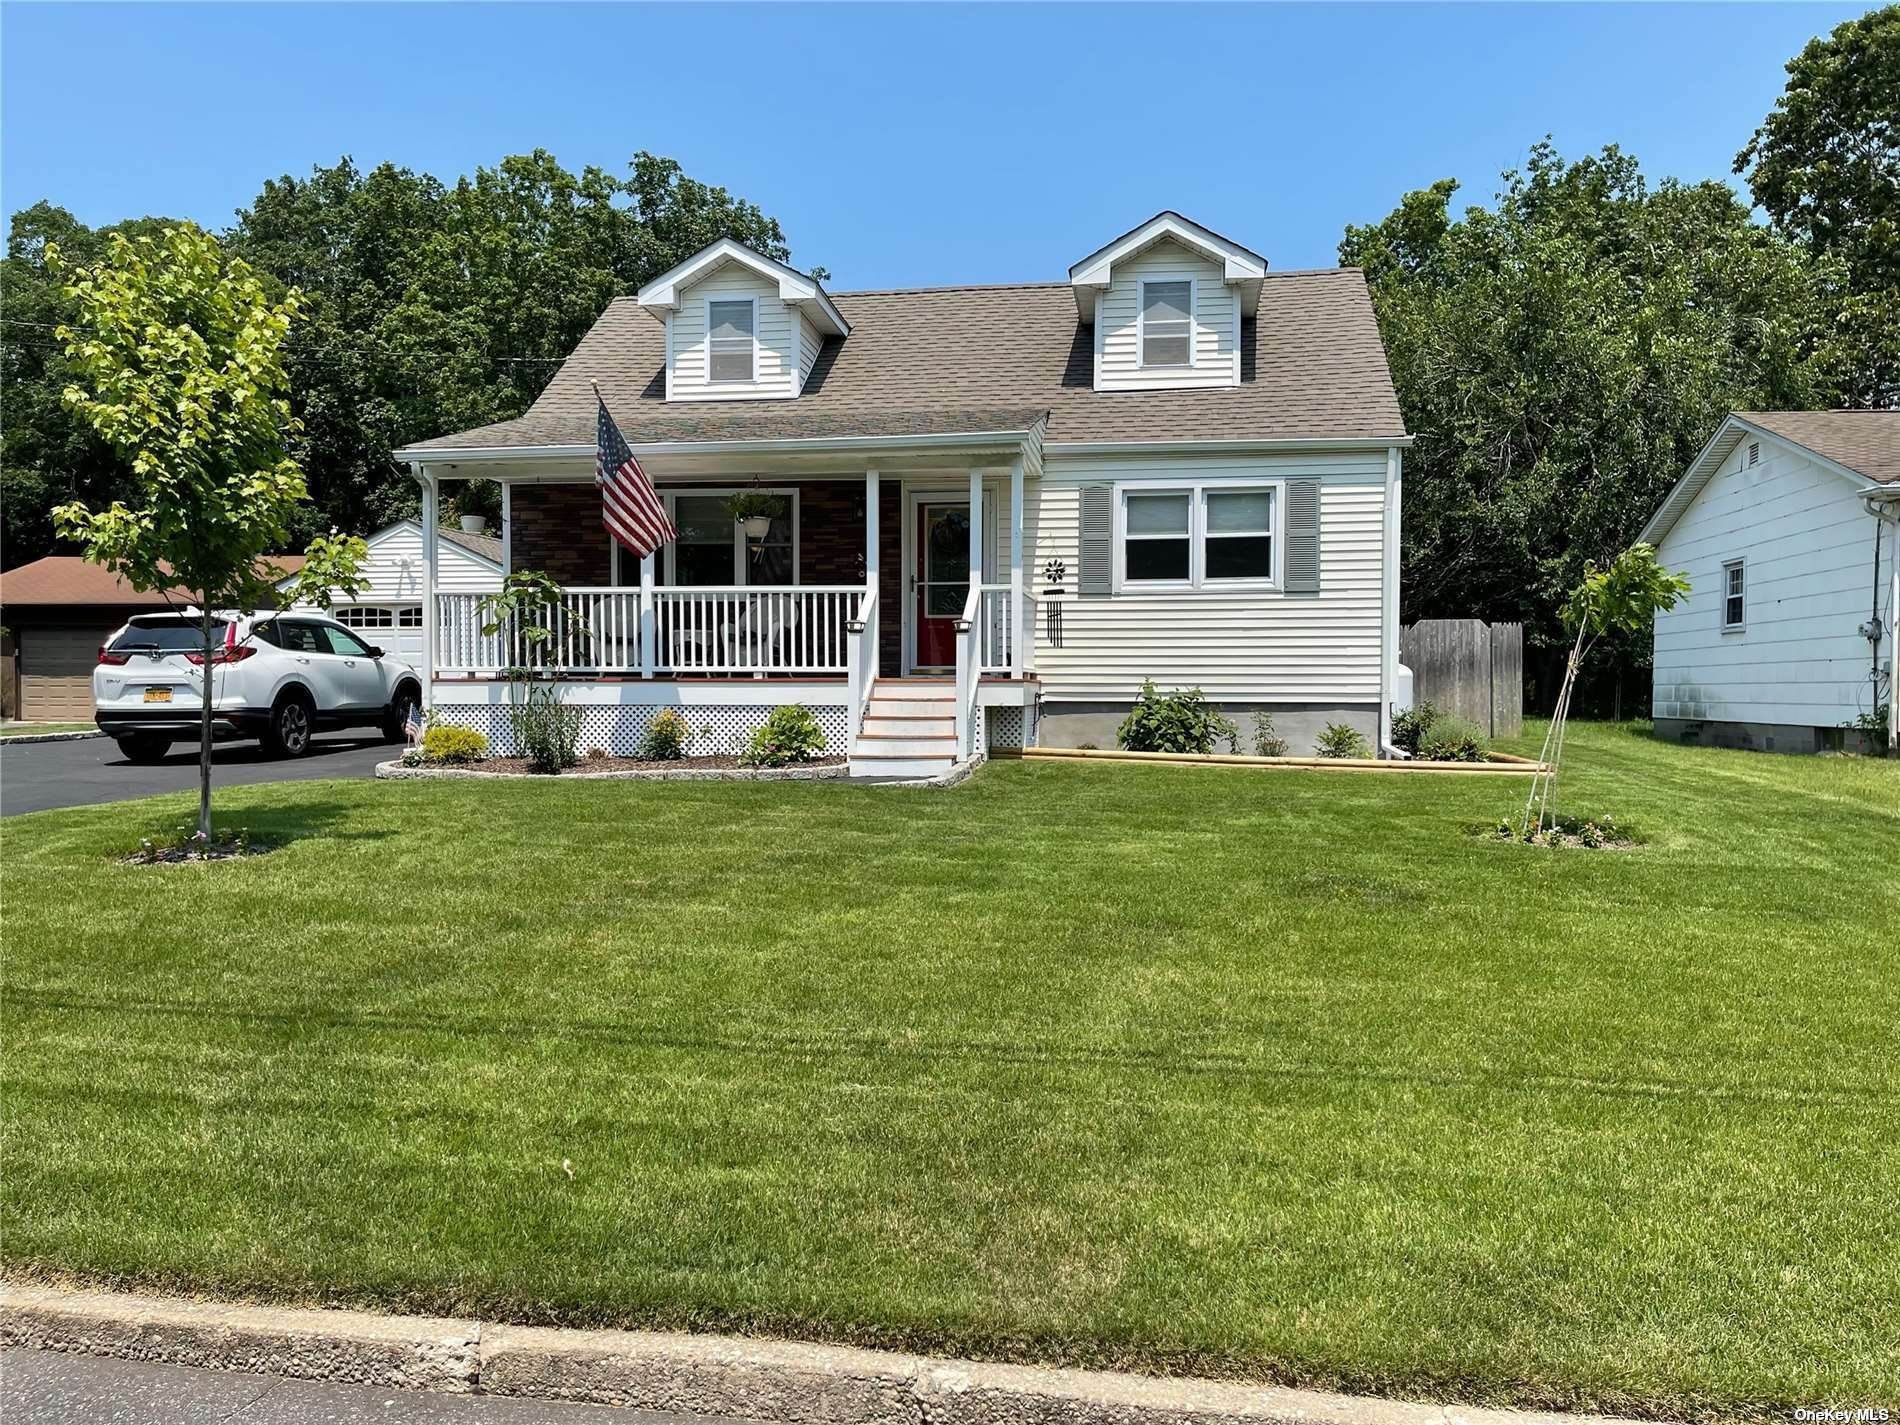 Residential for Sale at 7 Lilly Court, Moriches, NY 11955 Moriches, New York 11955 United States